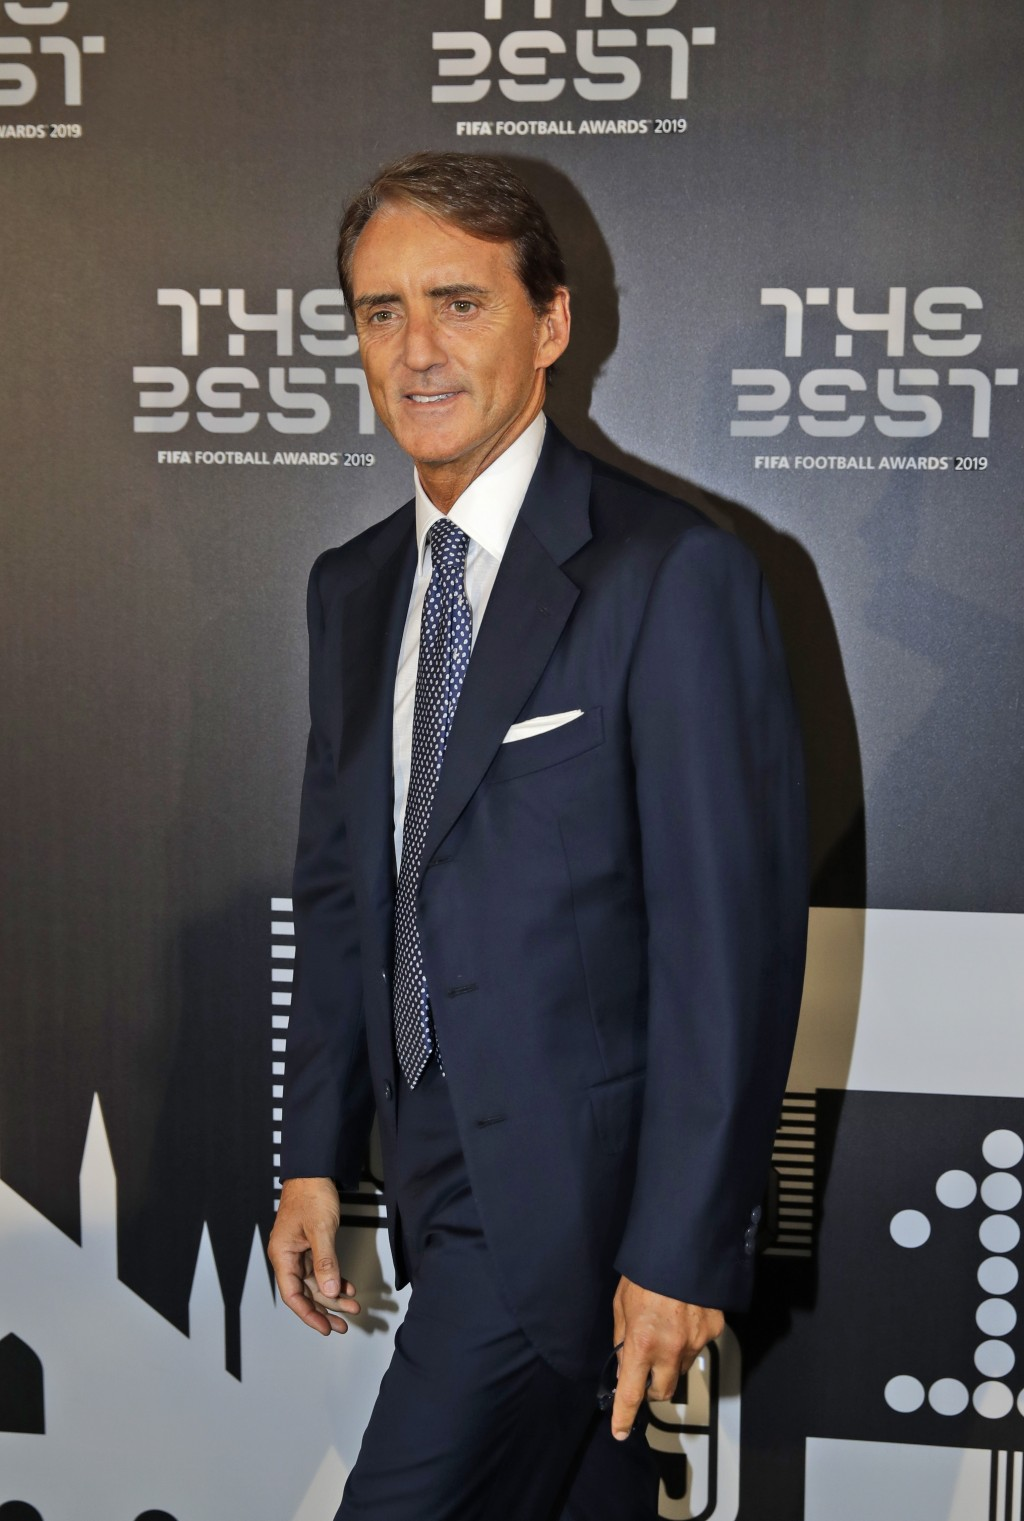 Italy coach Roberto Mancini arrives to attend the Best FIFA soccer awards, in Milan's La Scala theater, northern Italy, Monday, Sept. 23, 2019. Nether